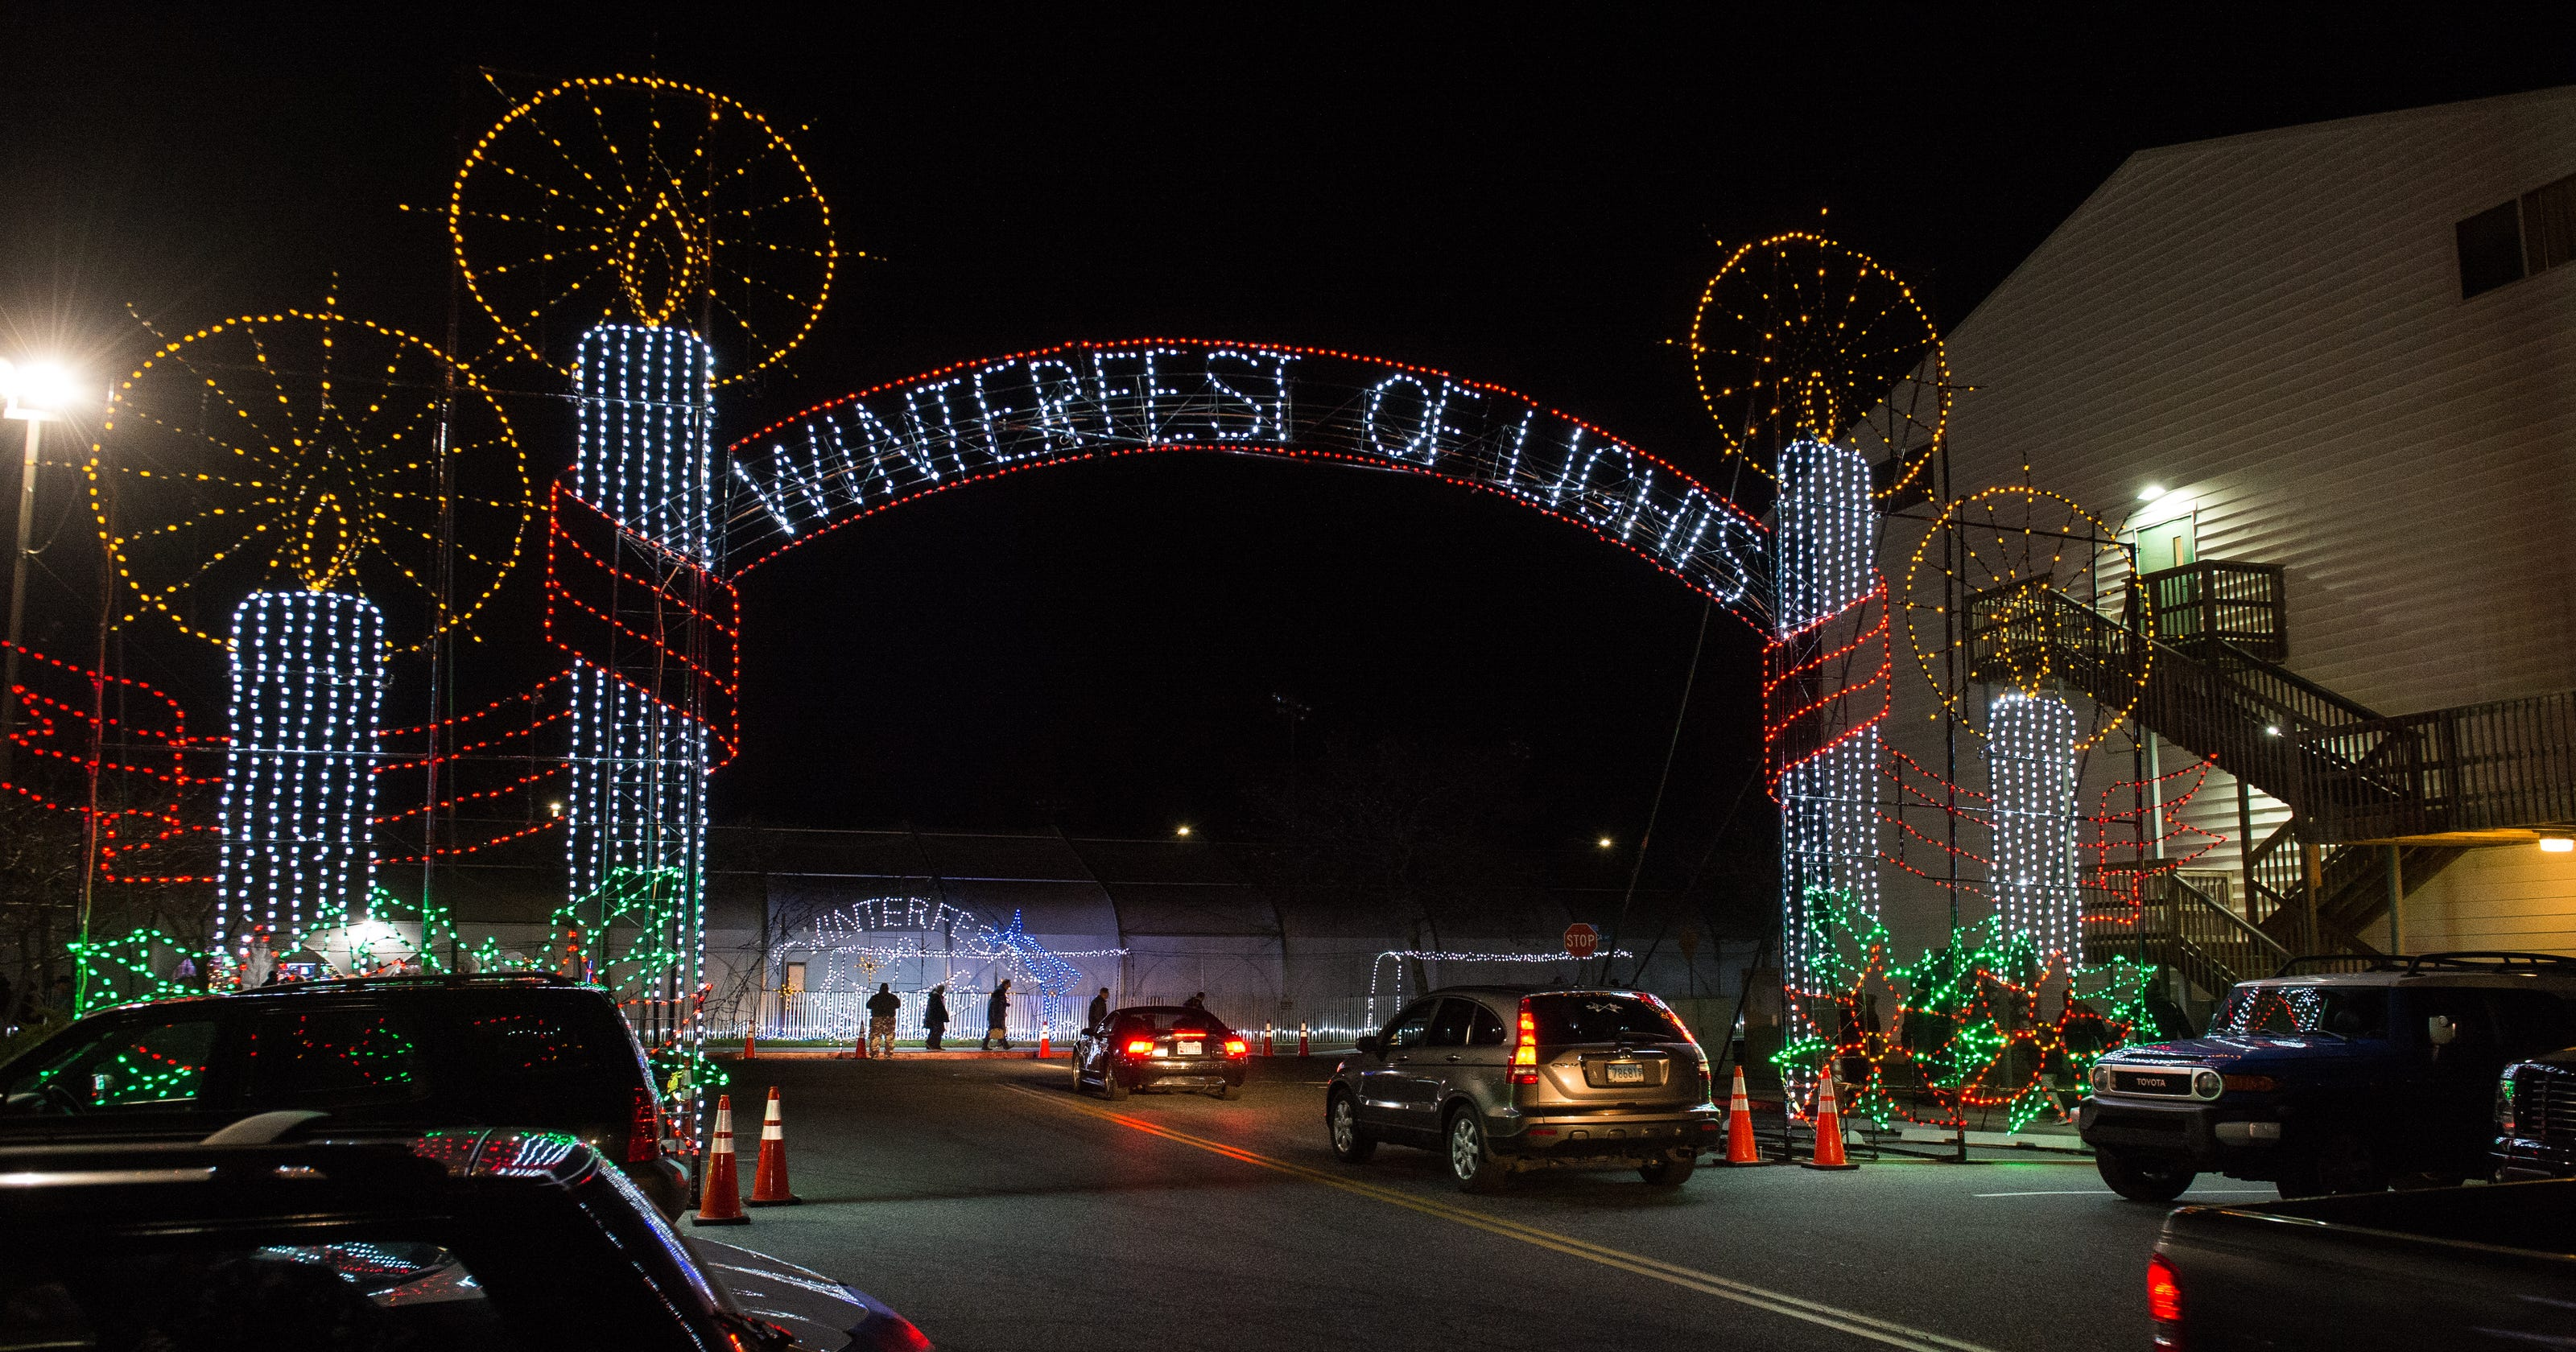 Winterfest of Lights in Ocean City: What to know about the event